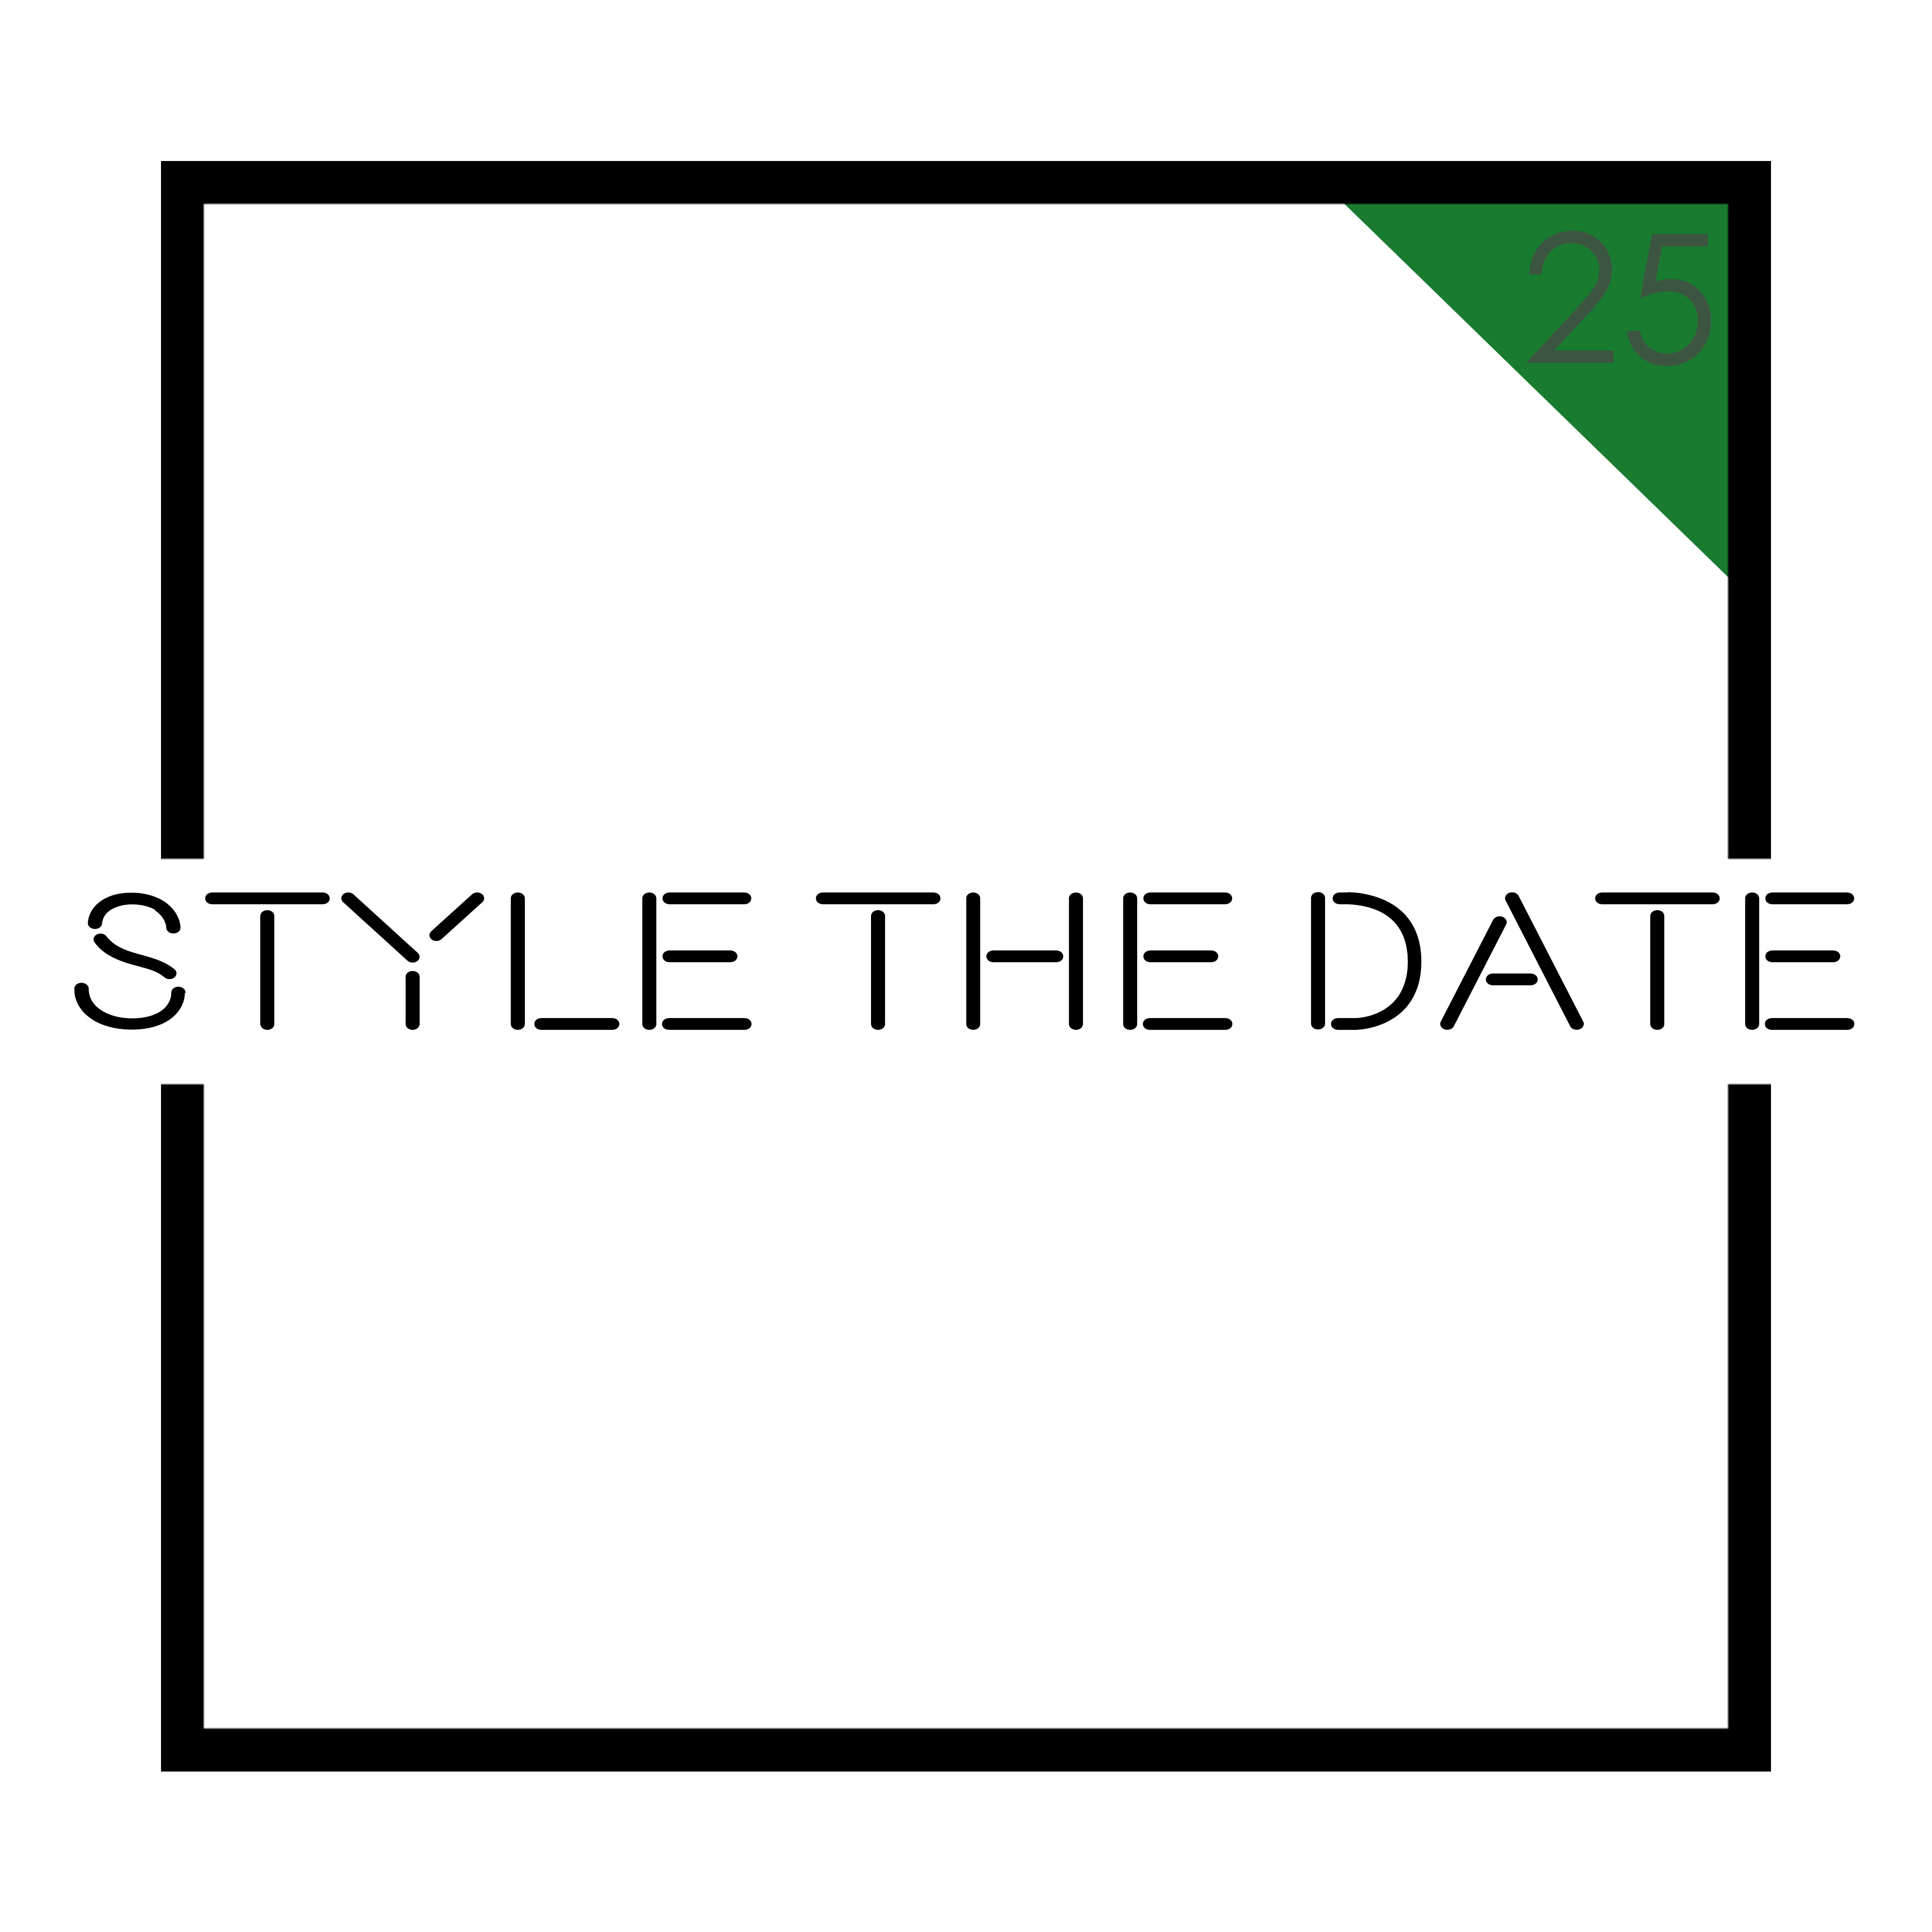 stylethedate's profile picture